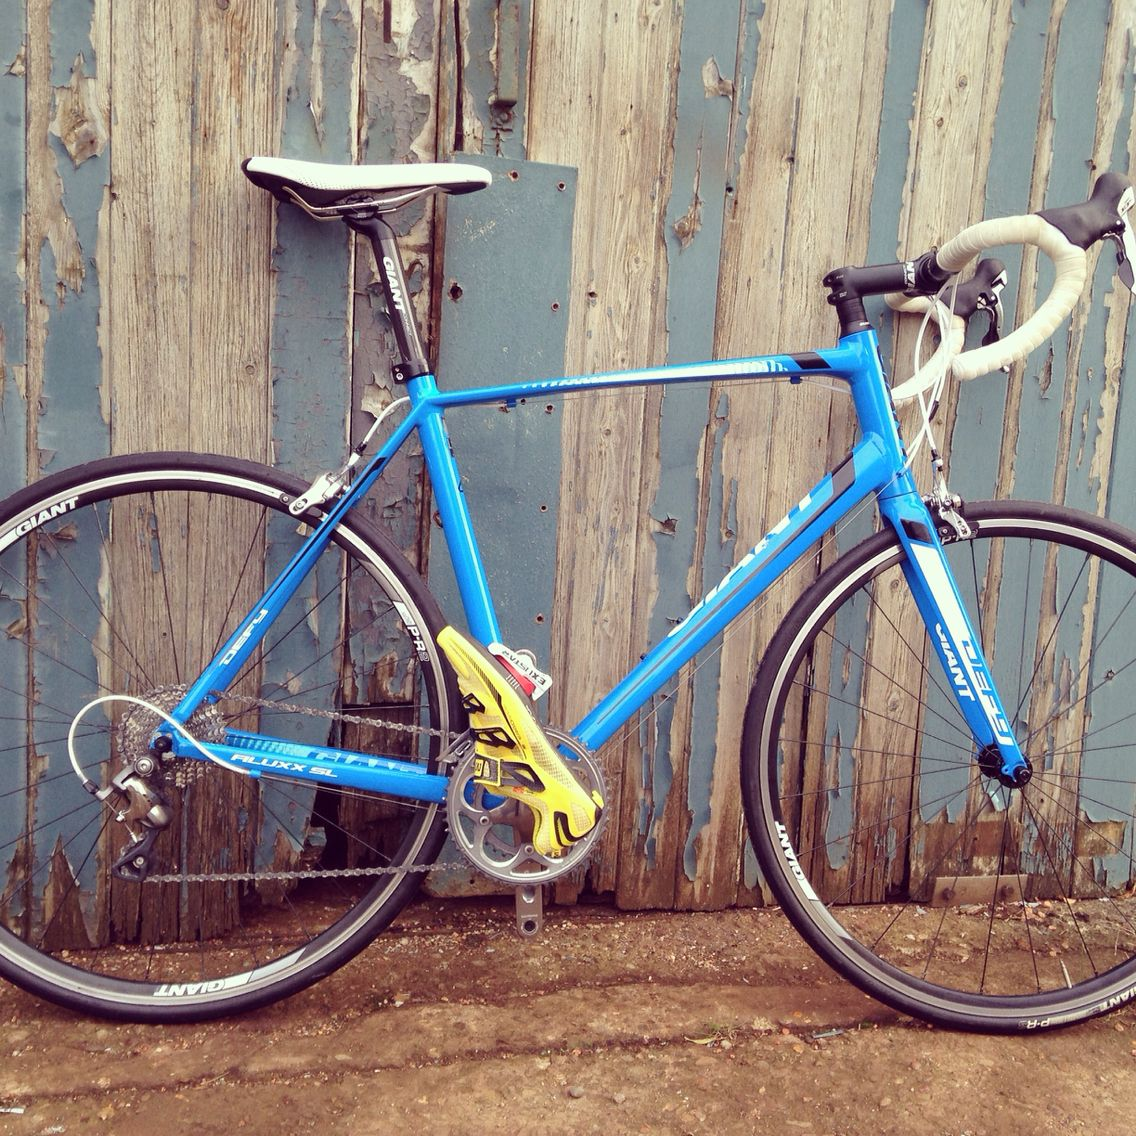 Love this Giant Defy shot.